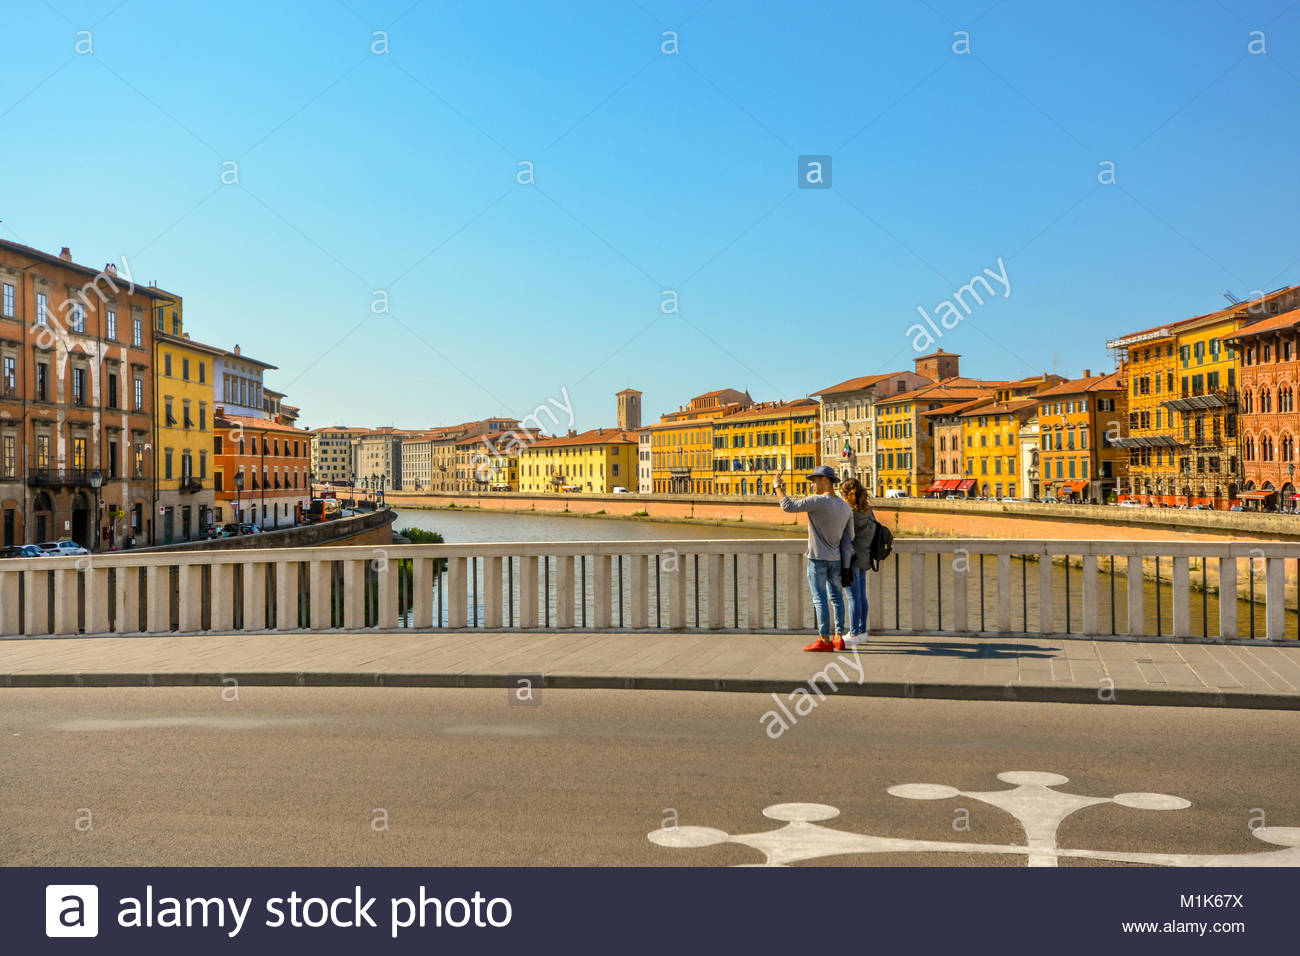 A couple stops on a bridge over the River Arno to take a photo selfie in the Tuscan city of Pisa Italy on a warm - Stock Image